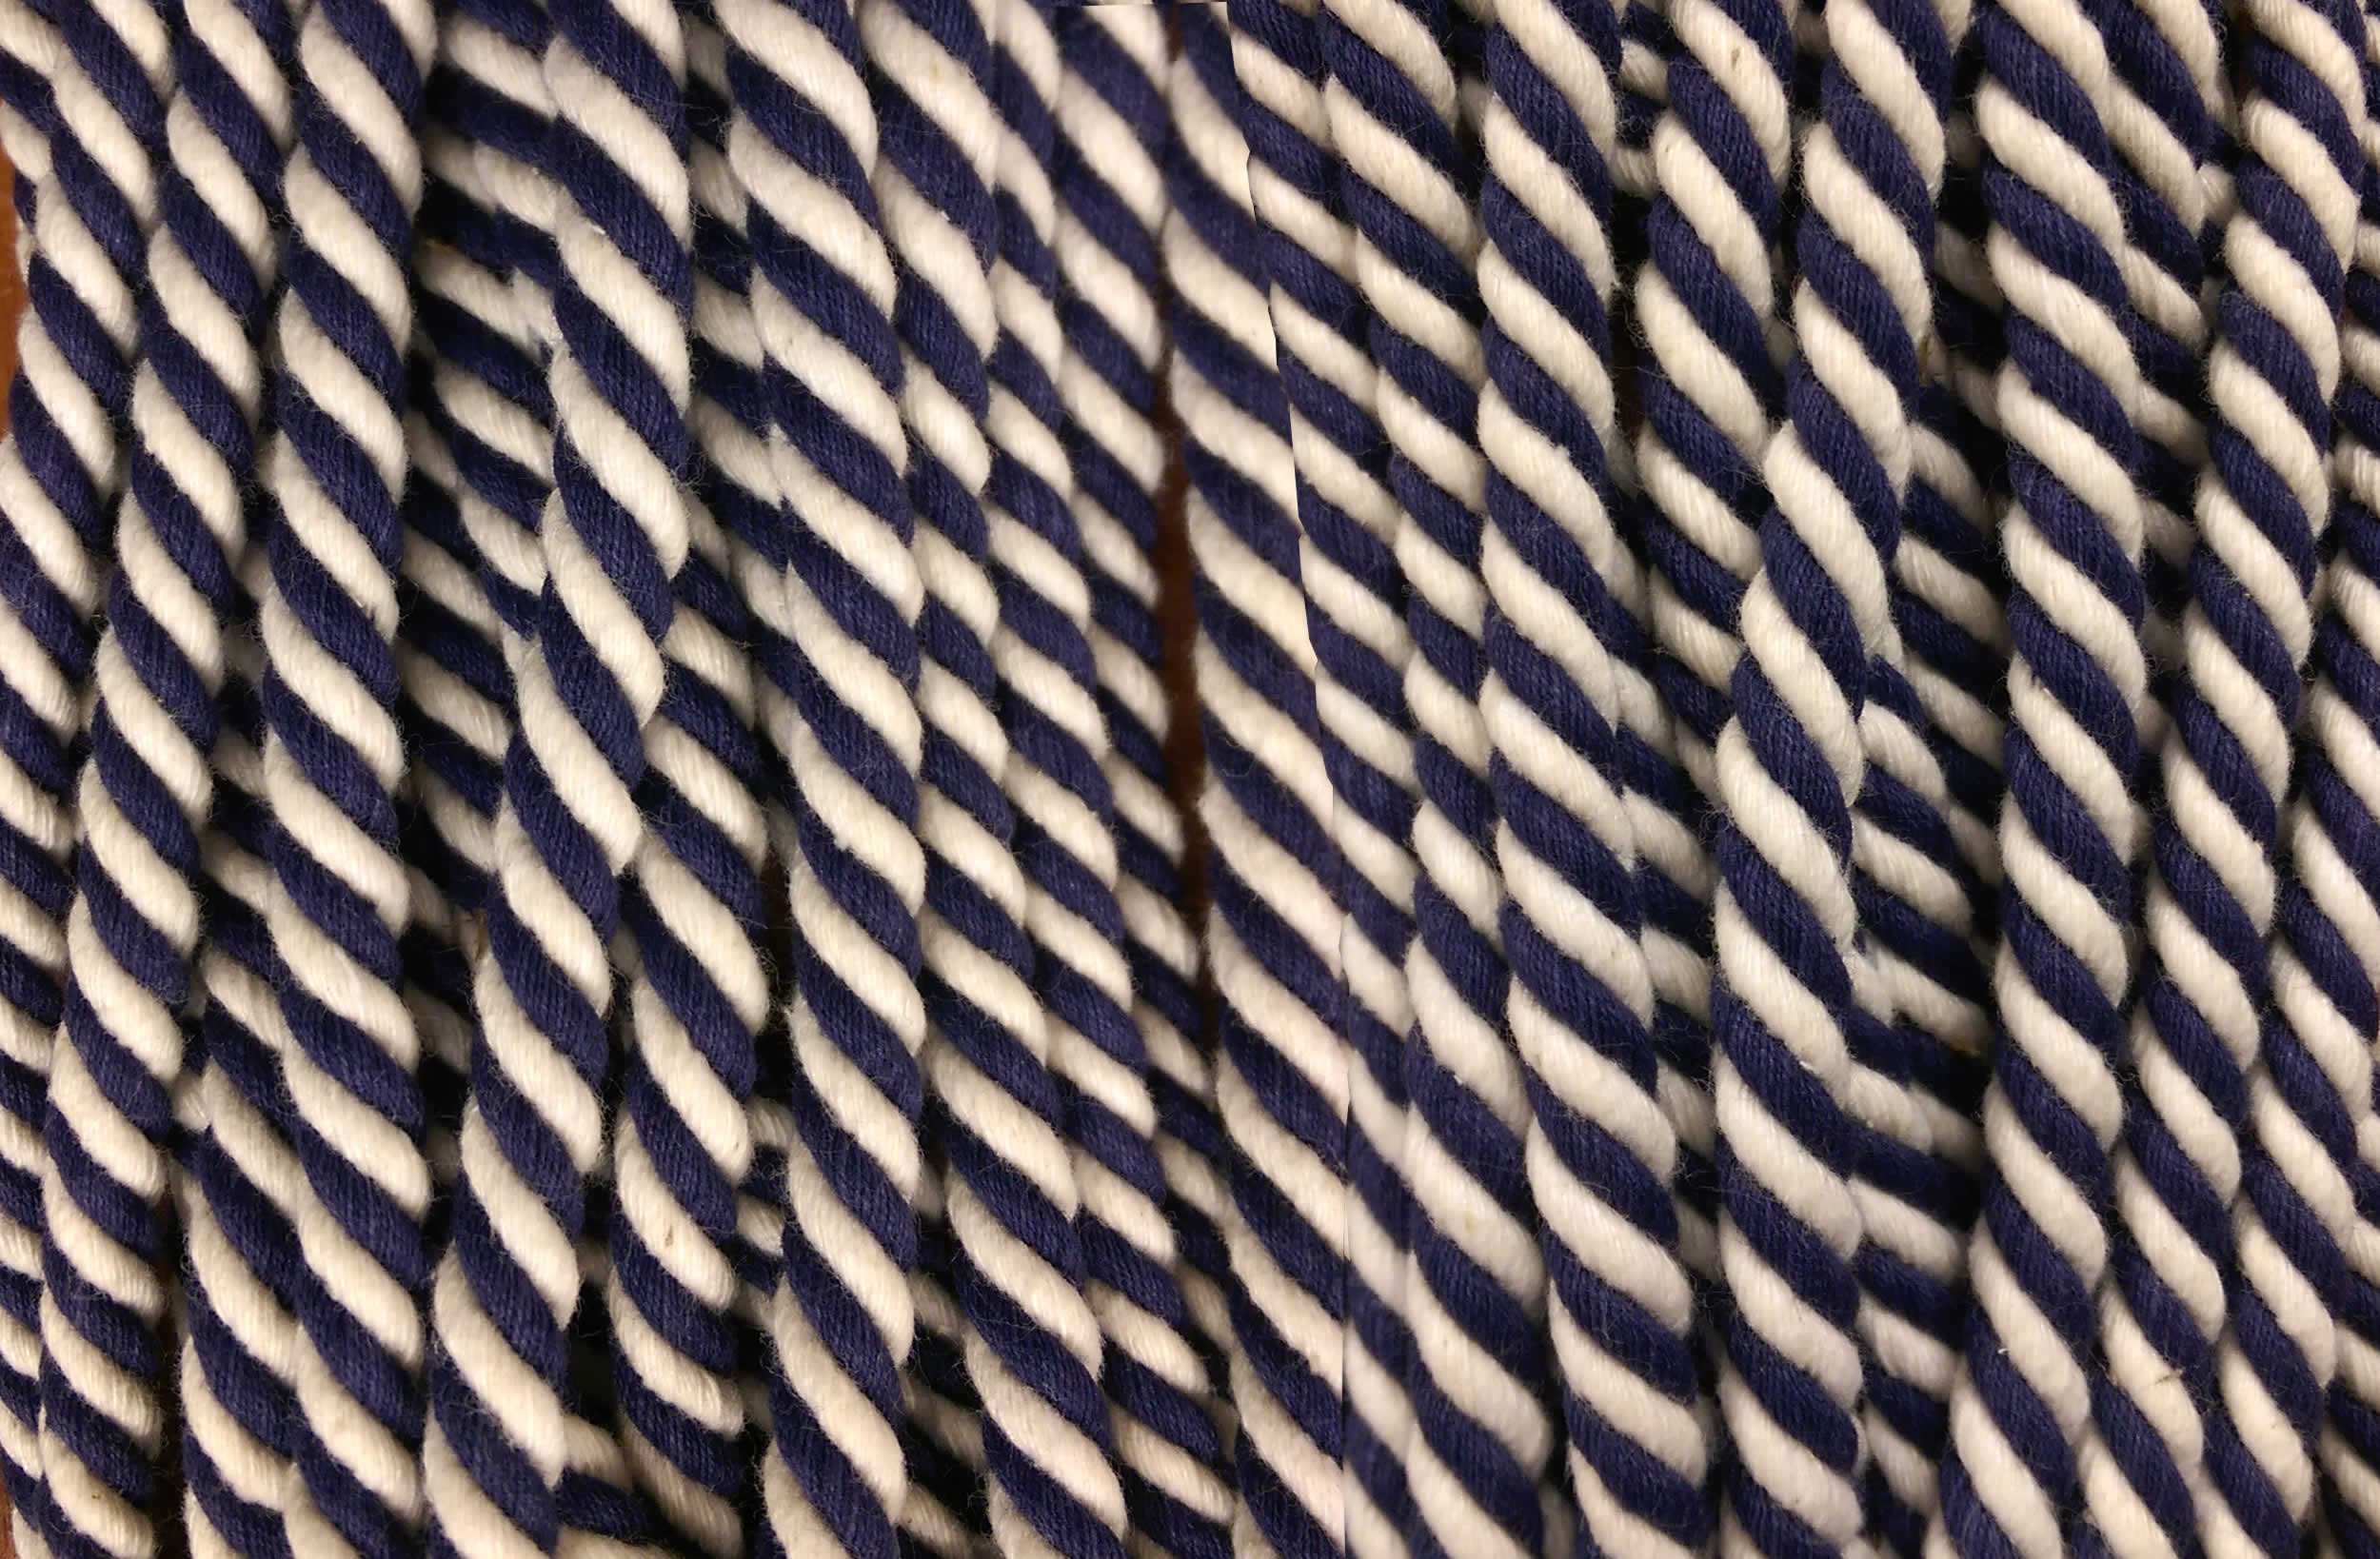 Navy Blue and White Striped Cord | Striped Rope